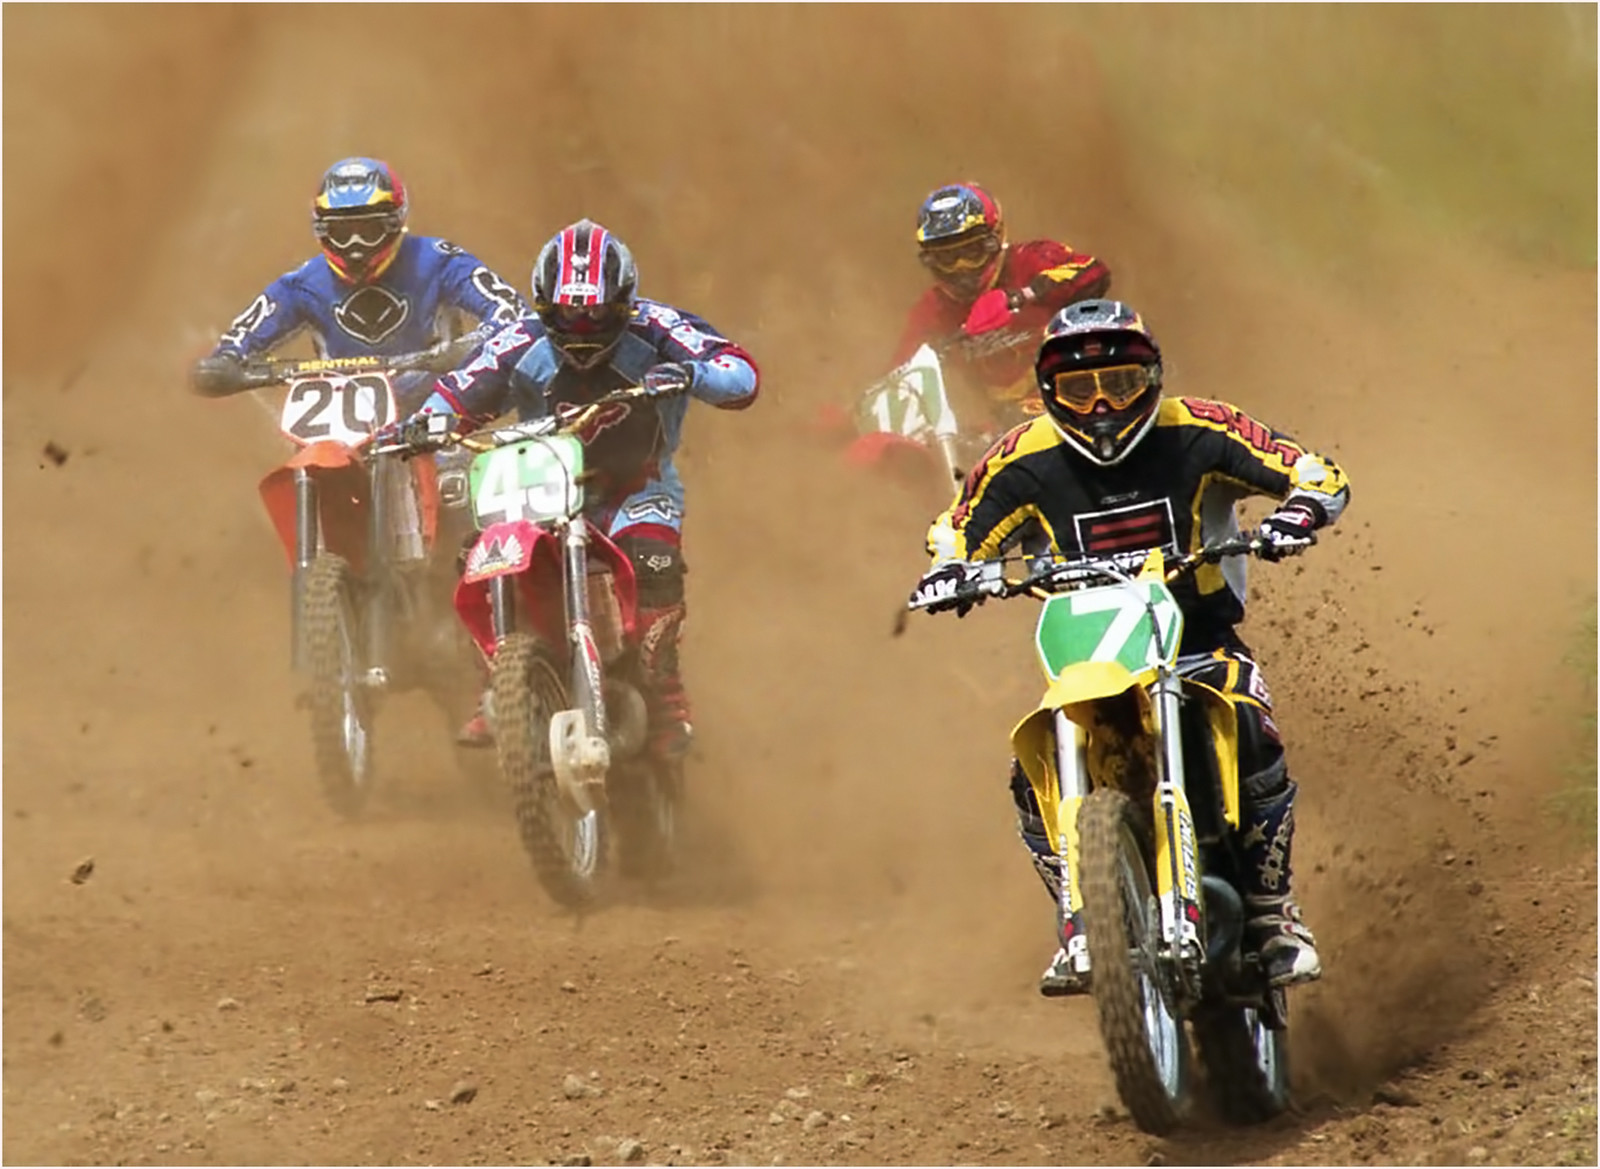 PDI - Moto Cross Racers by William Clegg (9 marks)